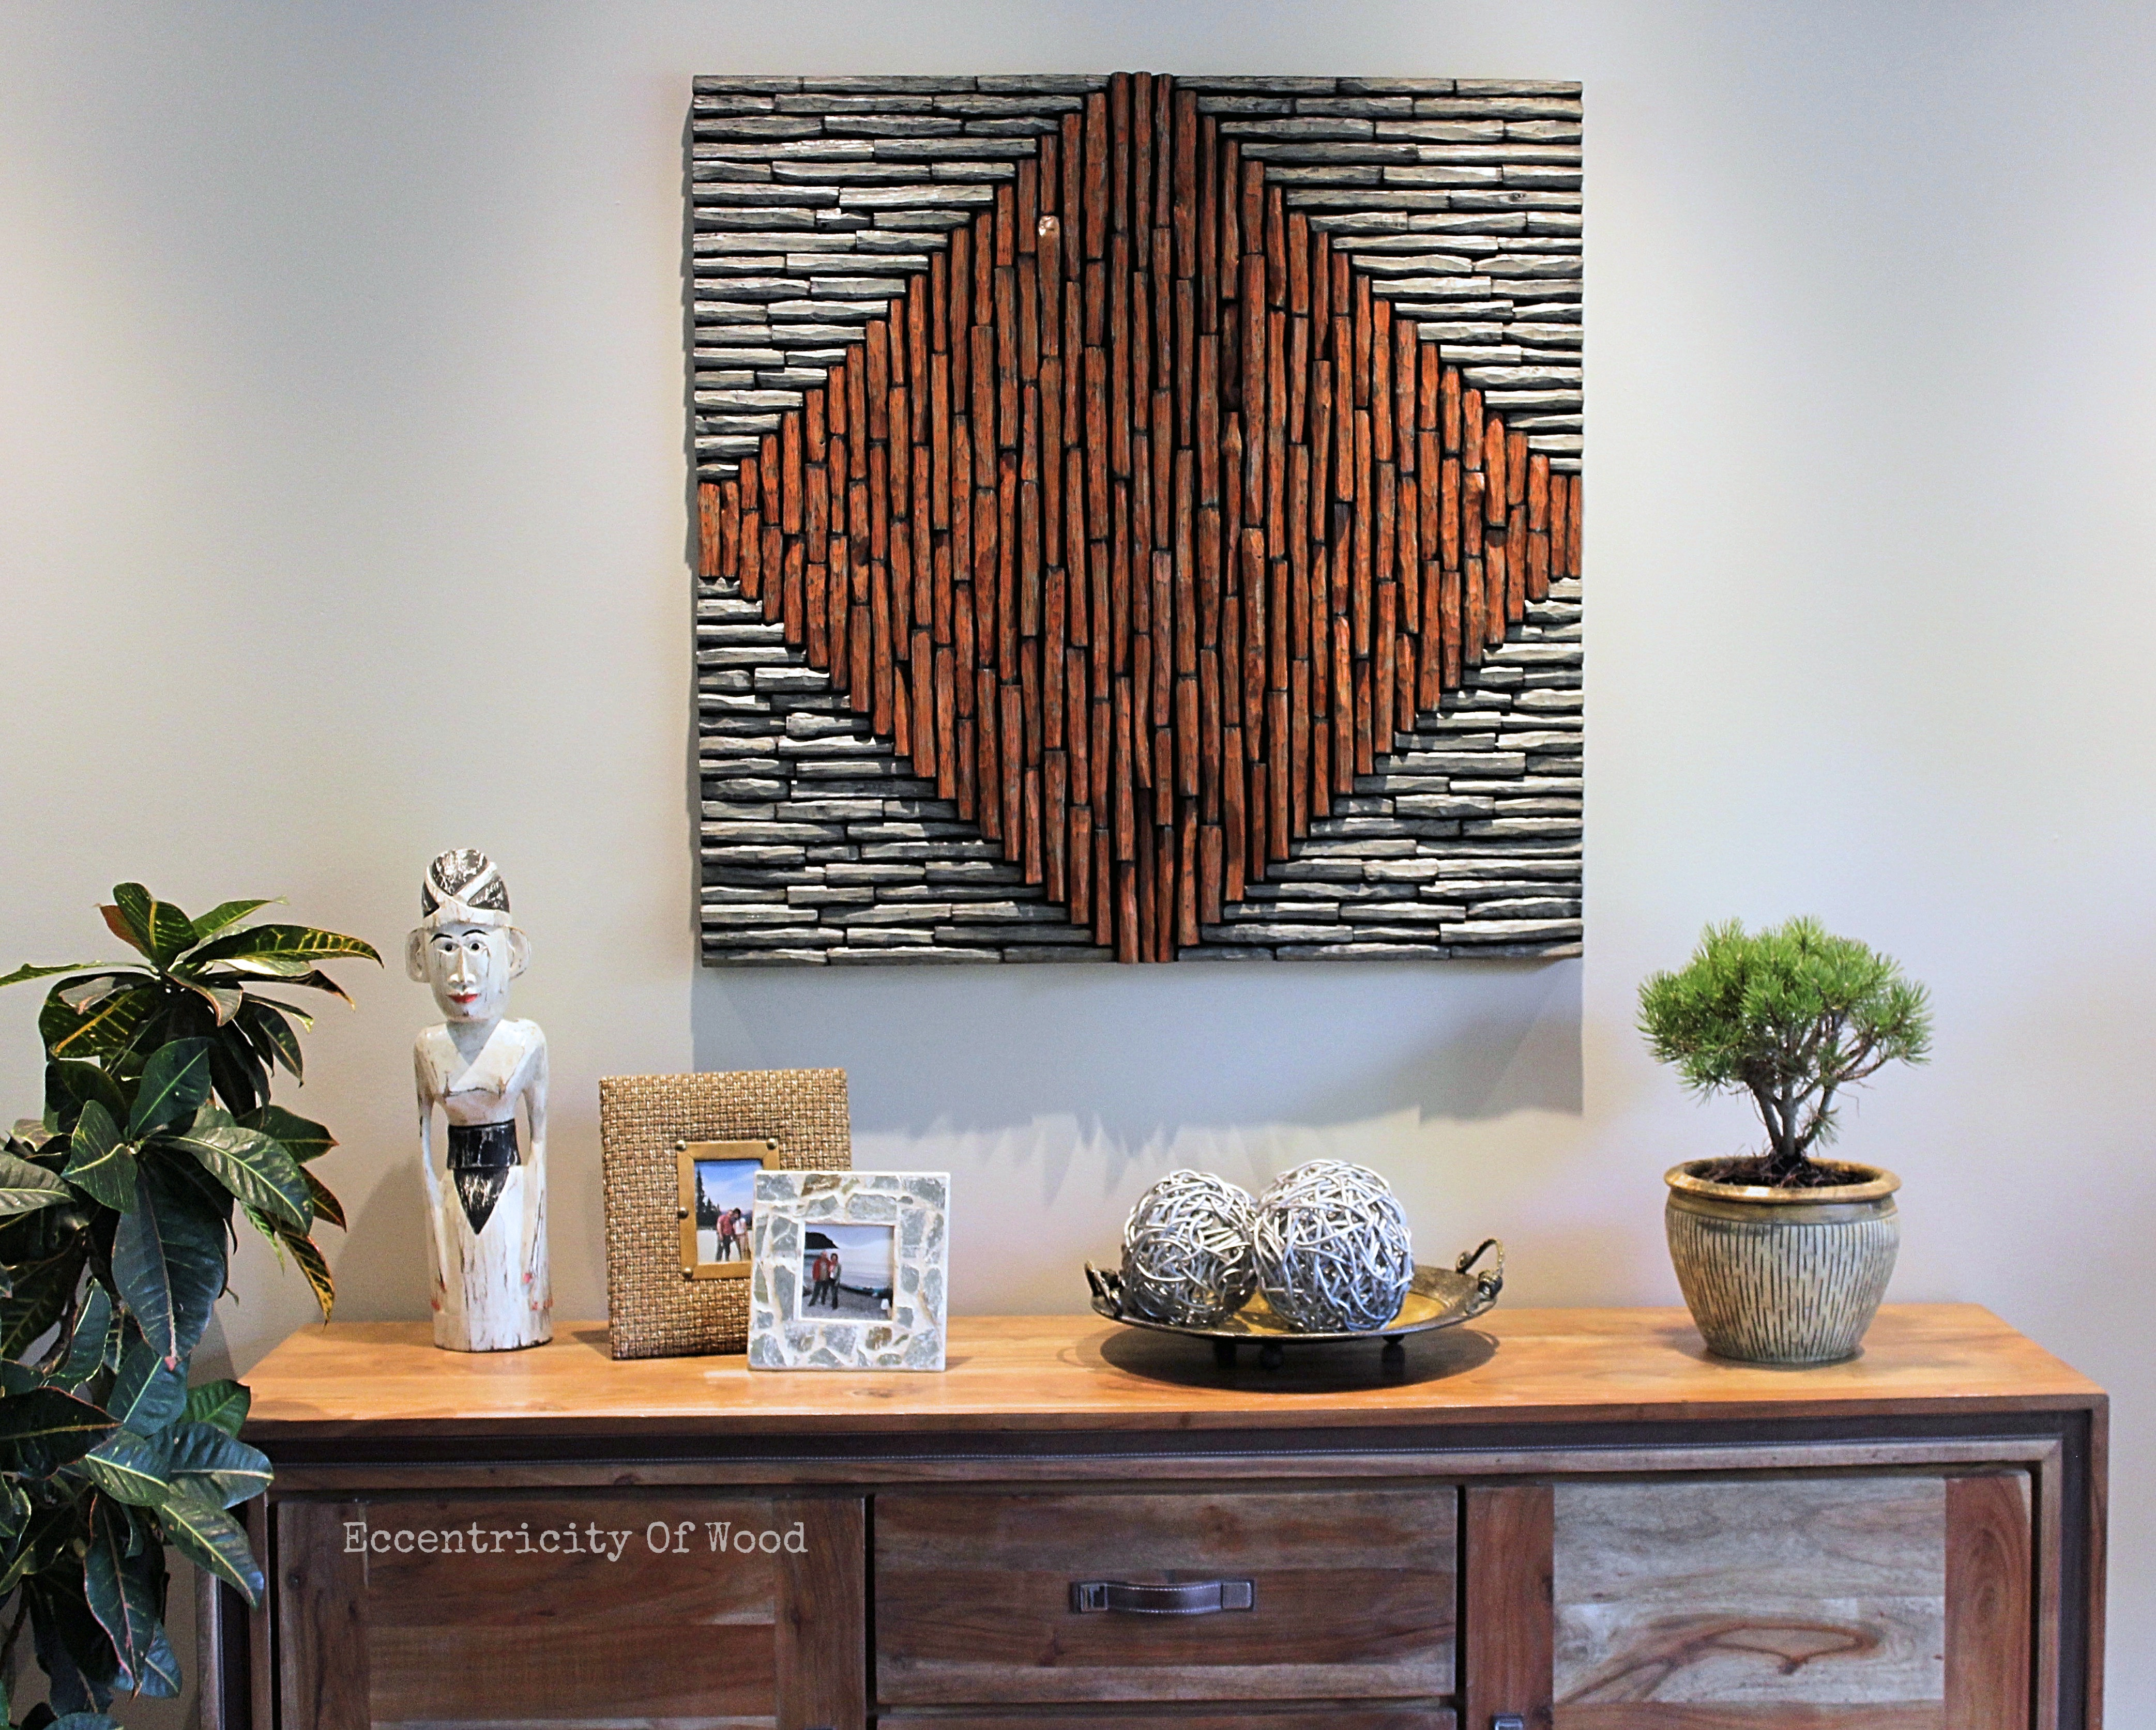 Eccentricity of wood abstract wooden wall sculptures ids toronto interior design show toronto interior design wood interior design wood amipublicfo Choice Image